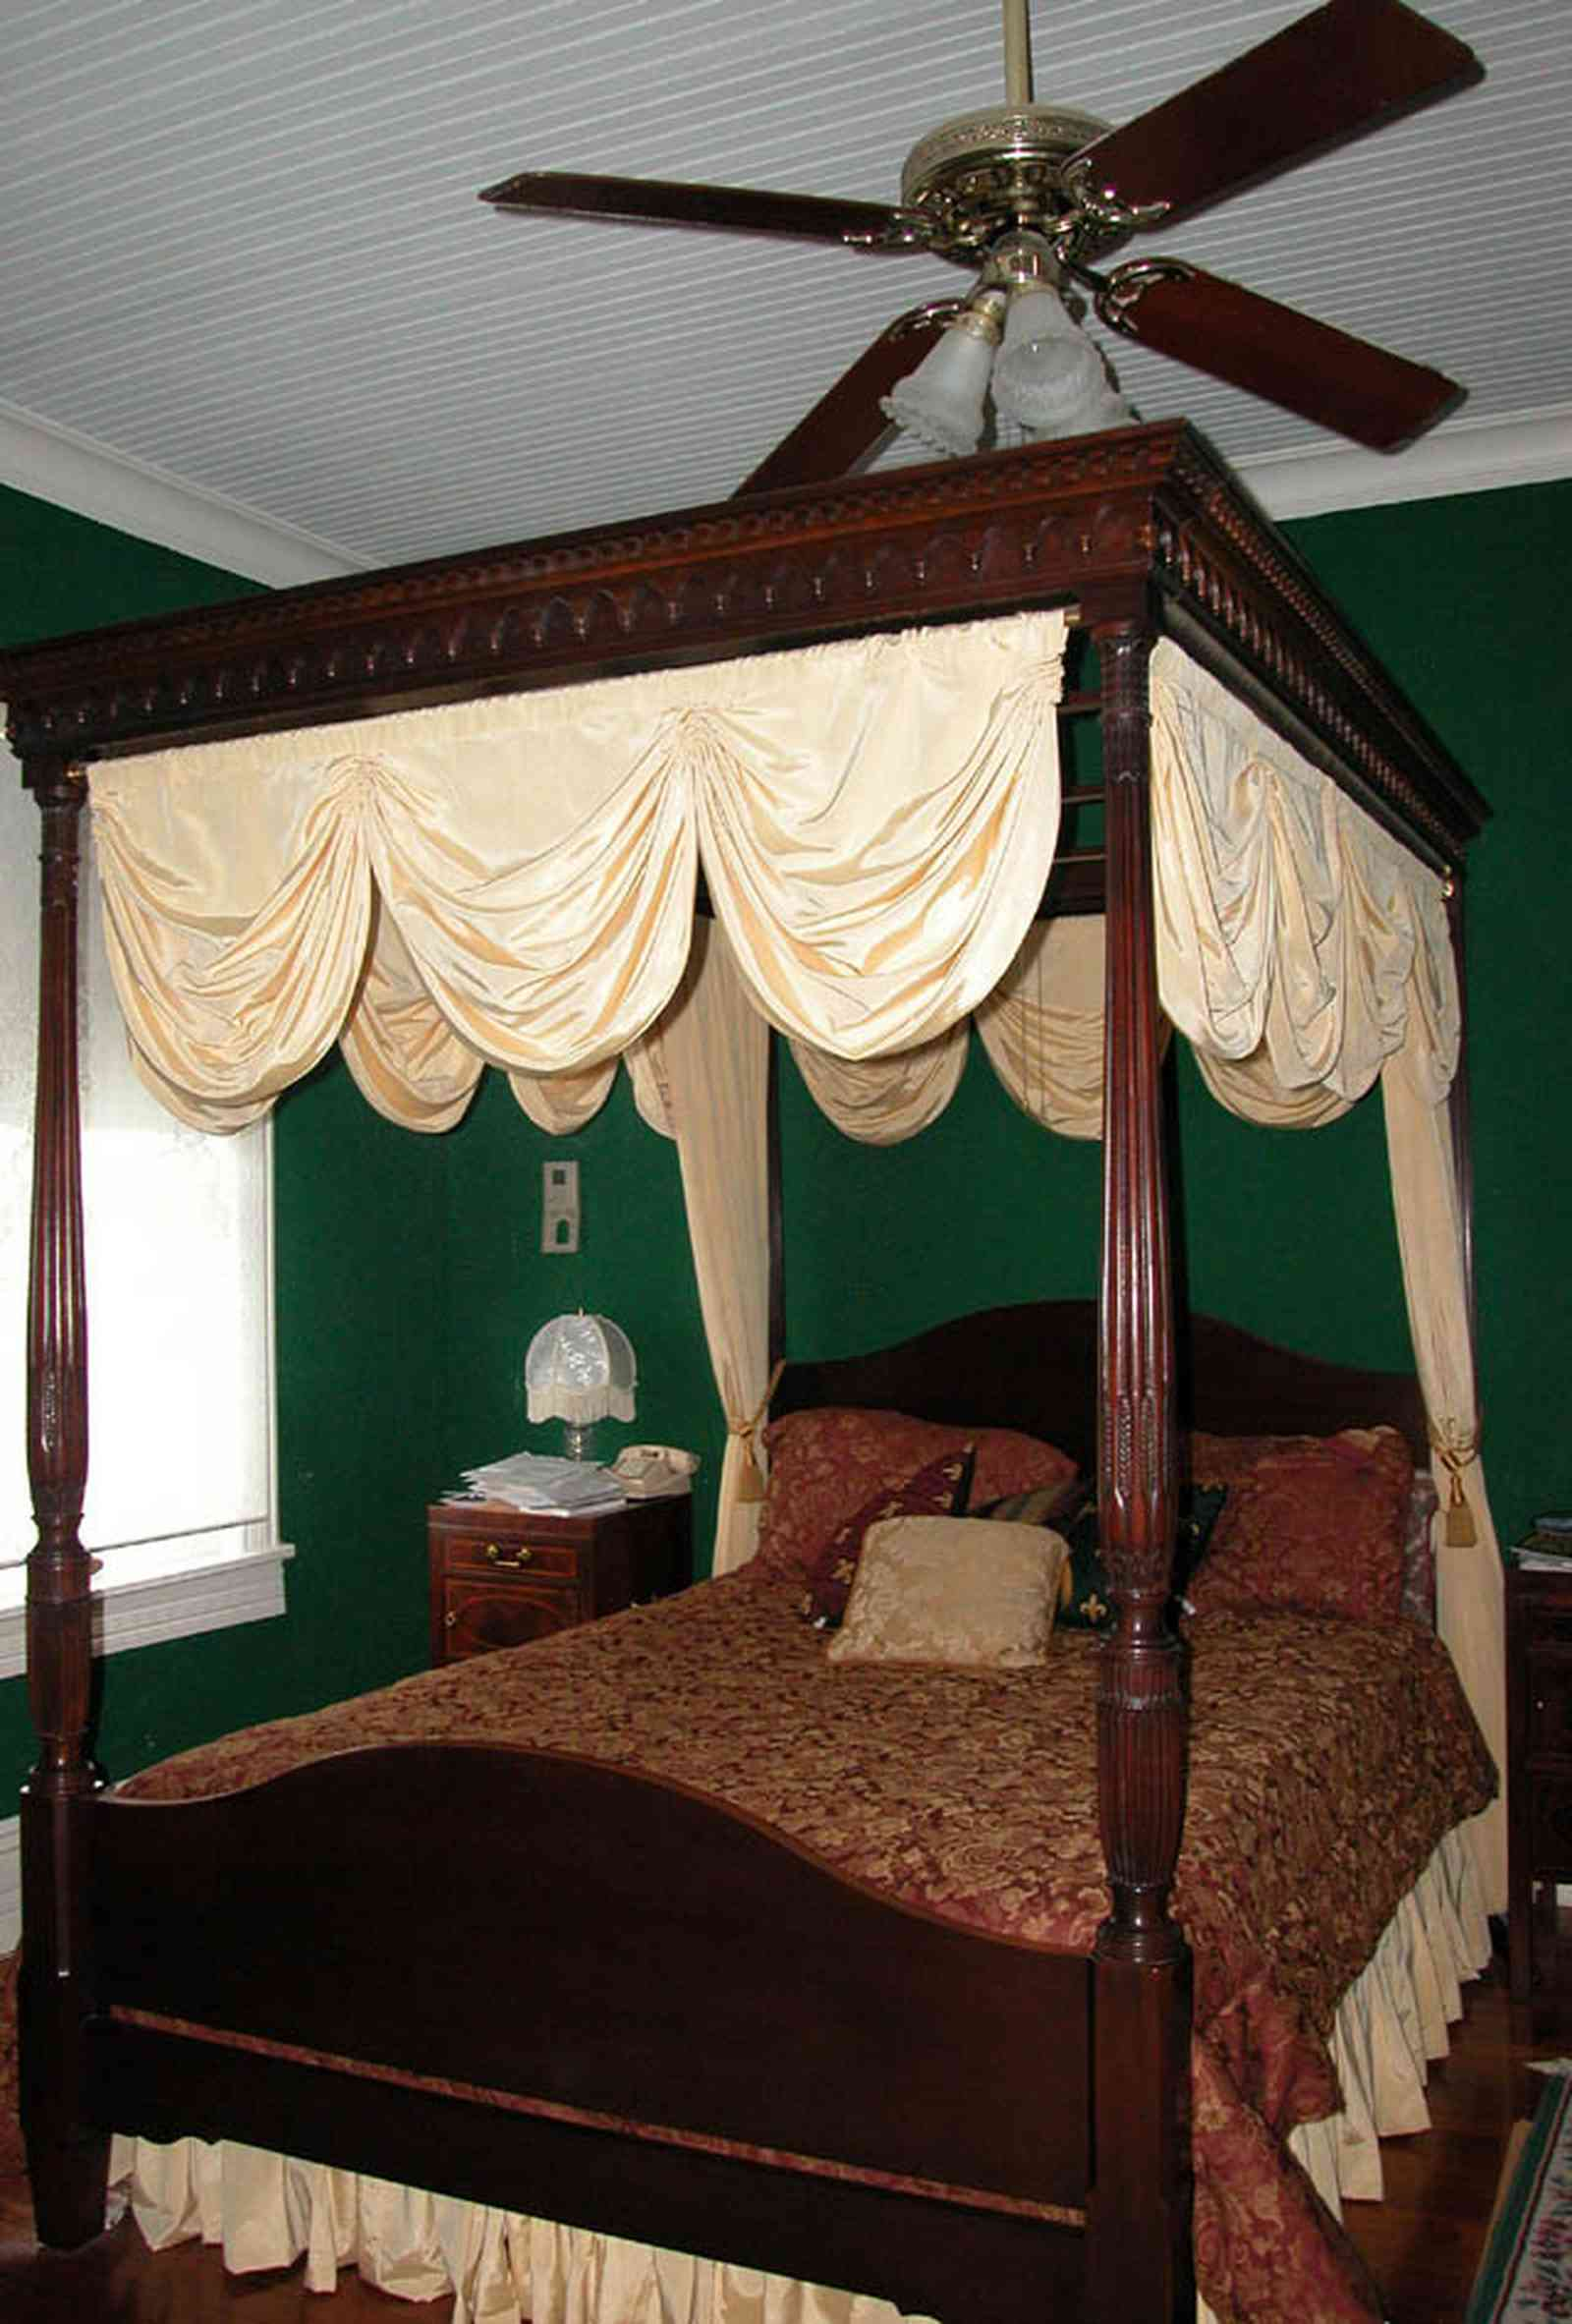 North-Hill:-52-West-Gonzalez-Street_19.jpg:  canopy bed, damask bedspread, four-poster bed, swag curtain, ceiling fan